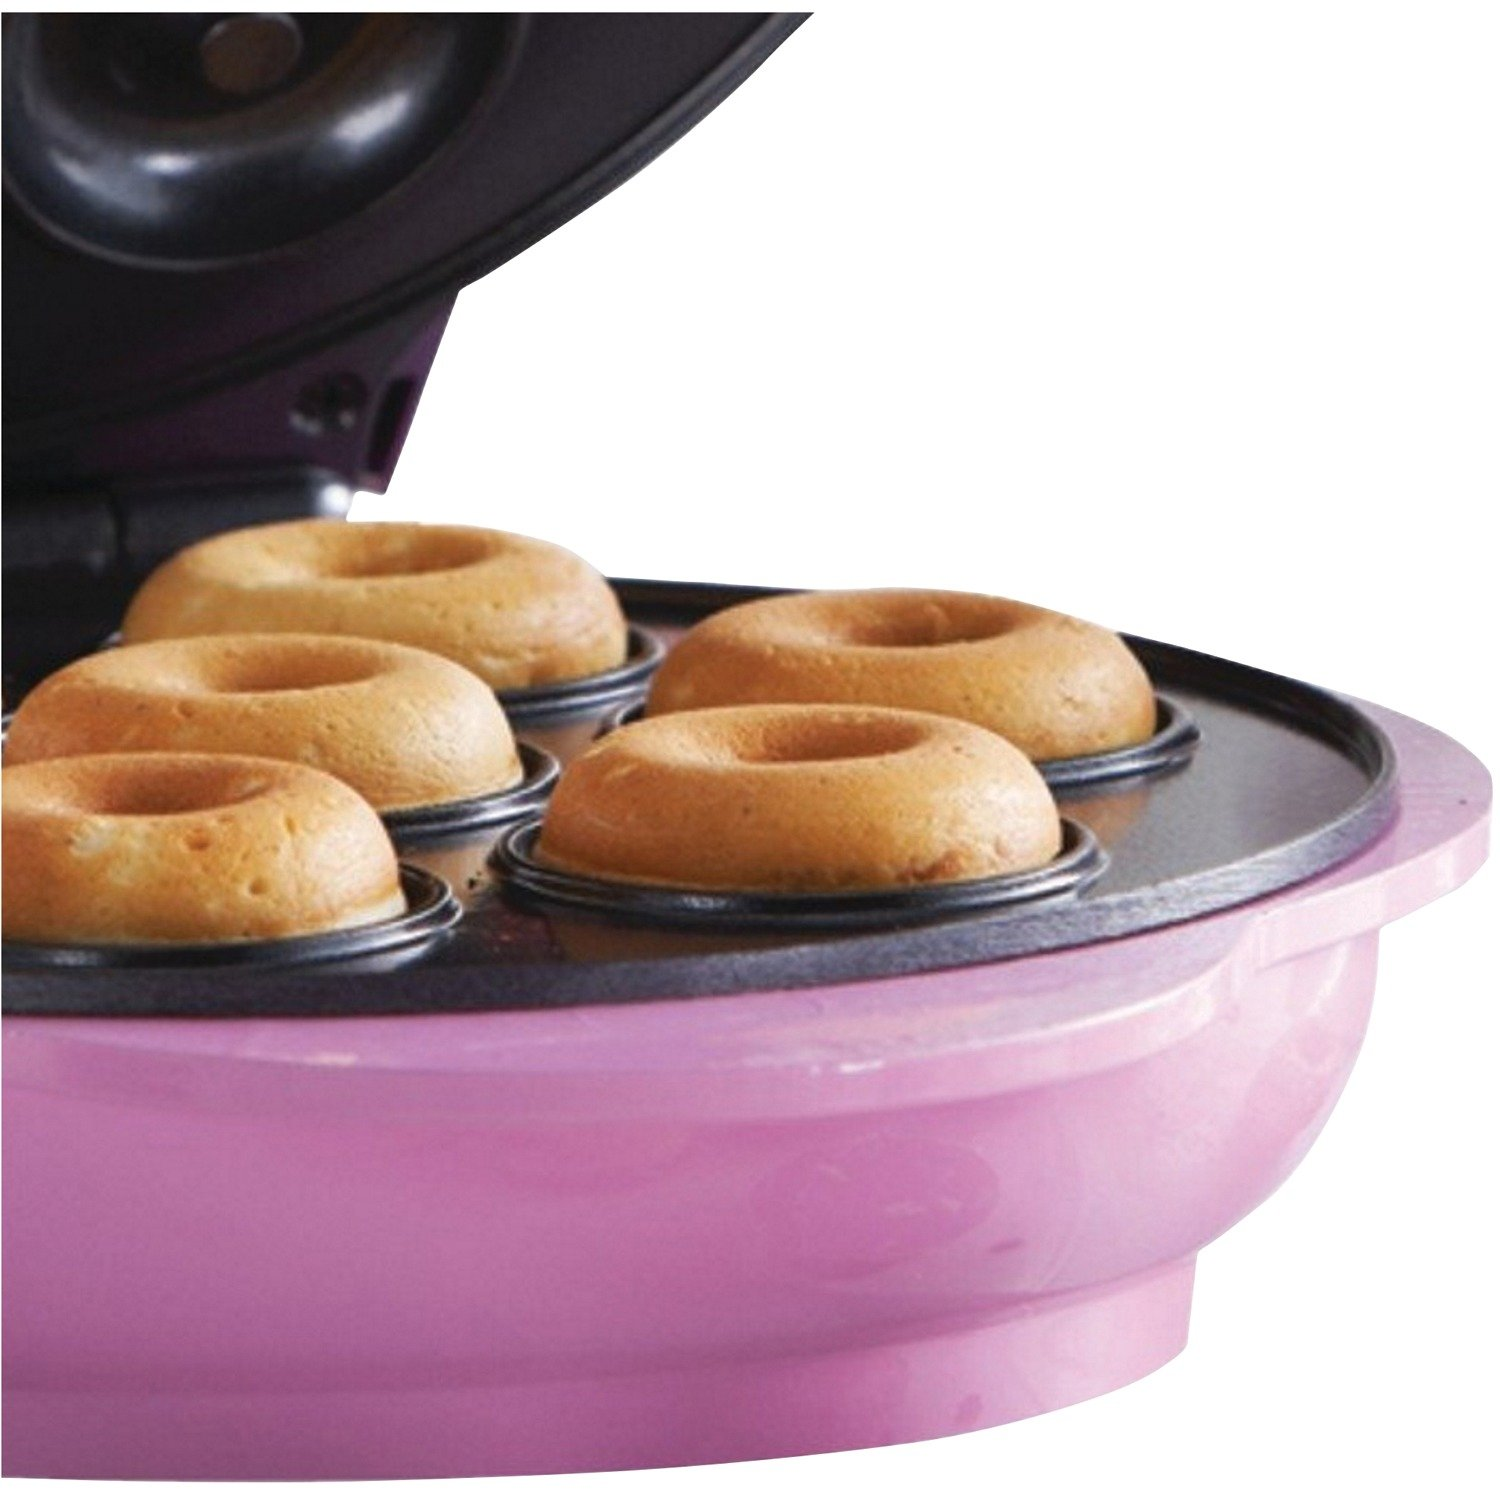 Brentwood TS-250 Non-Stick Mini Donut Maker Machine, Pink by Brentwood (Image #5)